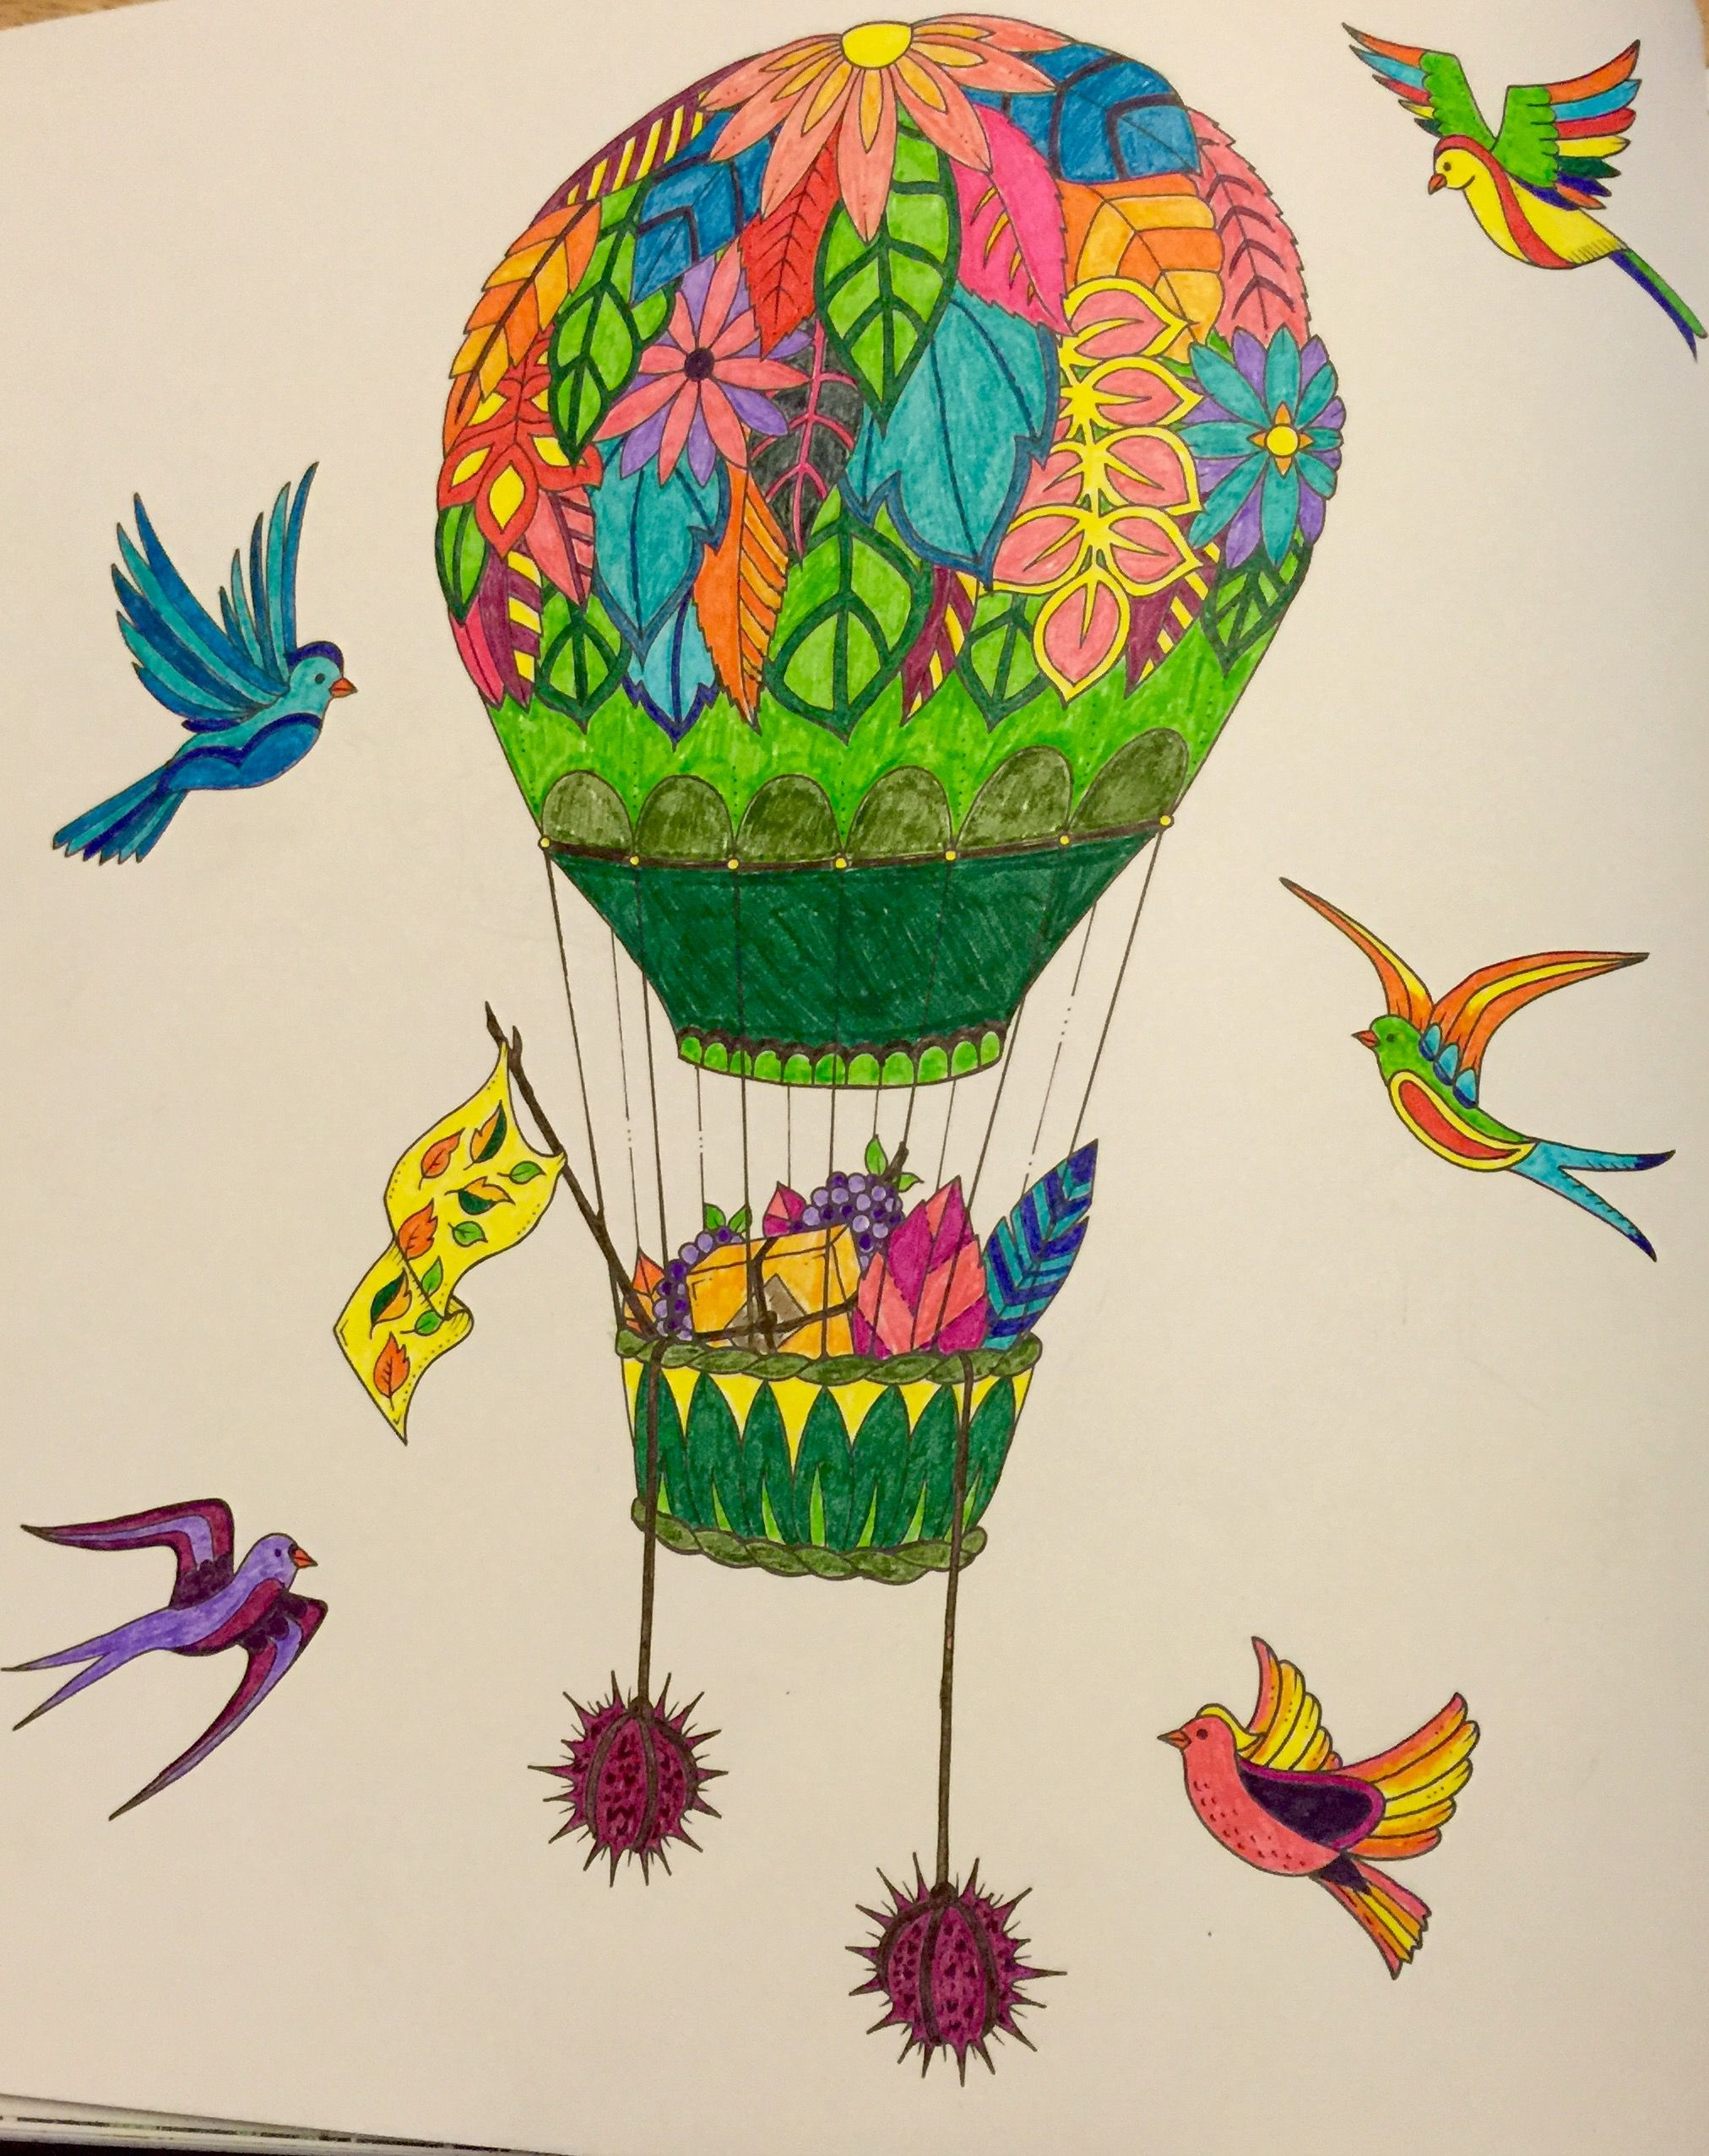 Enchanted forest coloring book website - Air Balloon Enchanted Forest Coloring Book